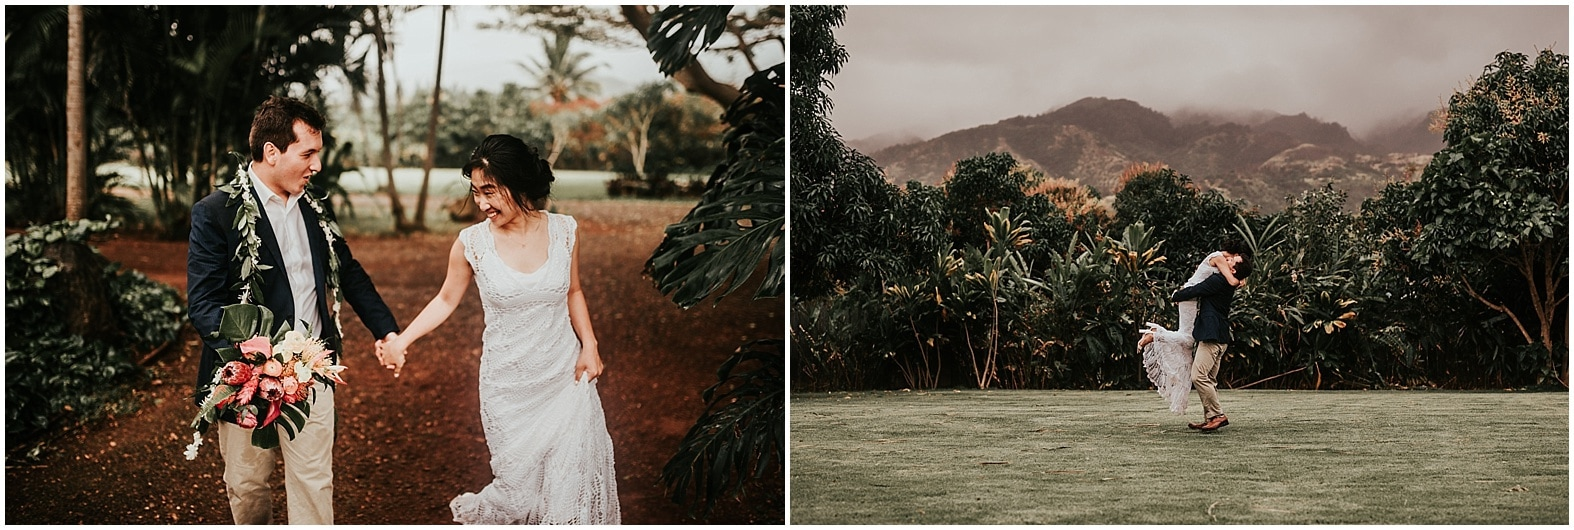 Oahu wedding photographer54